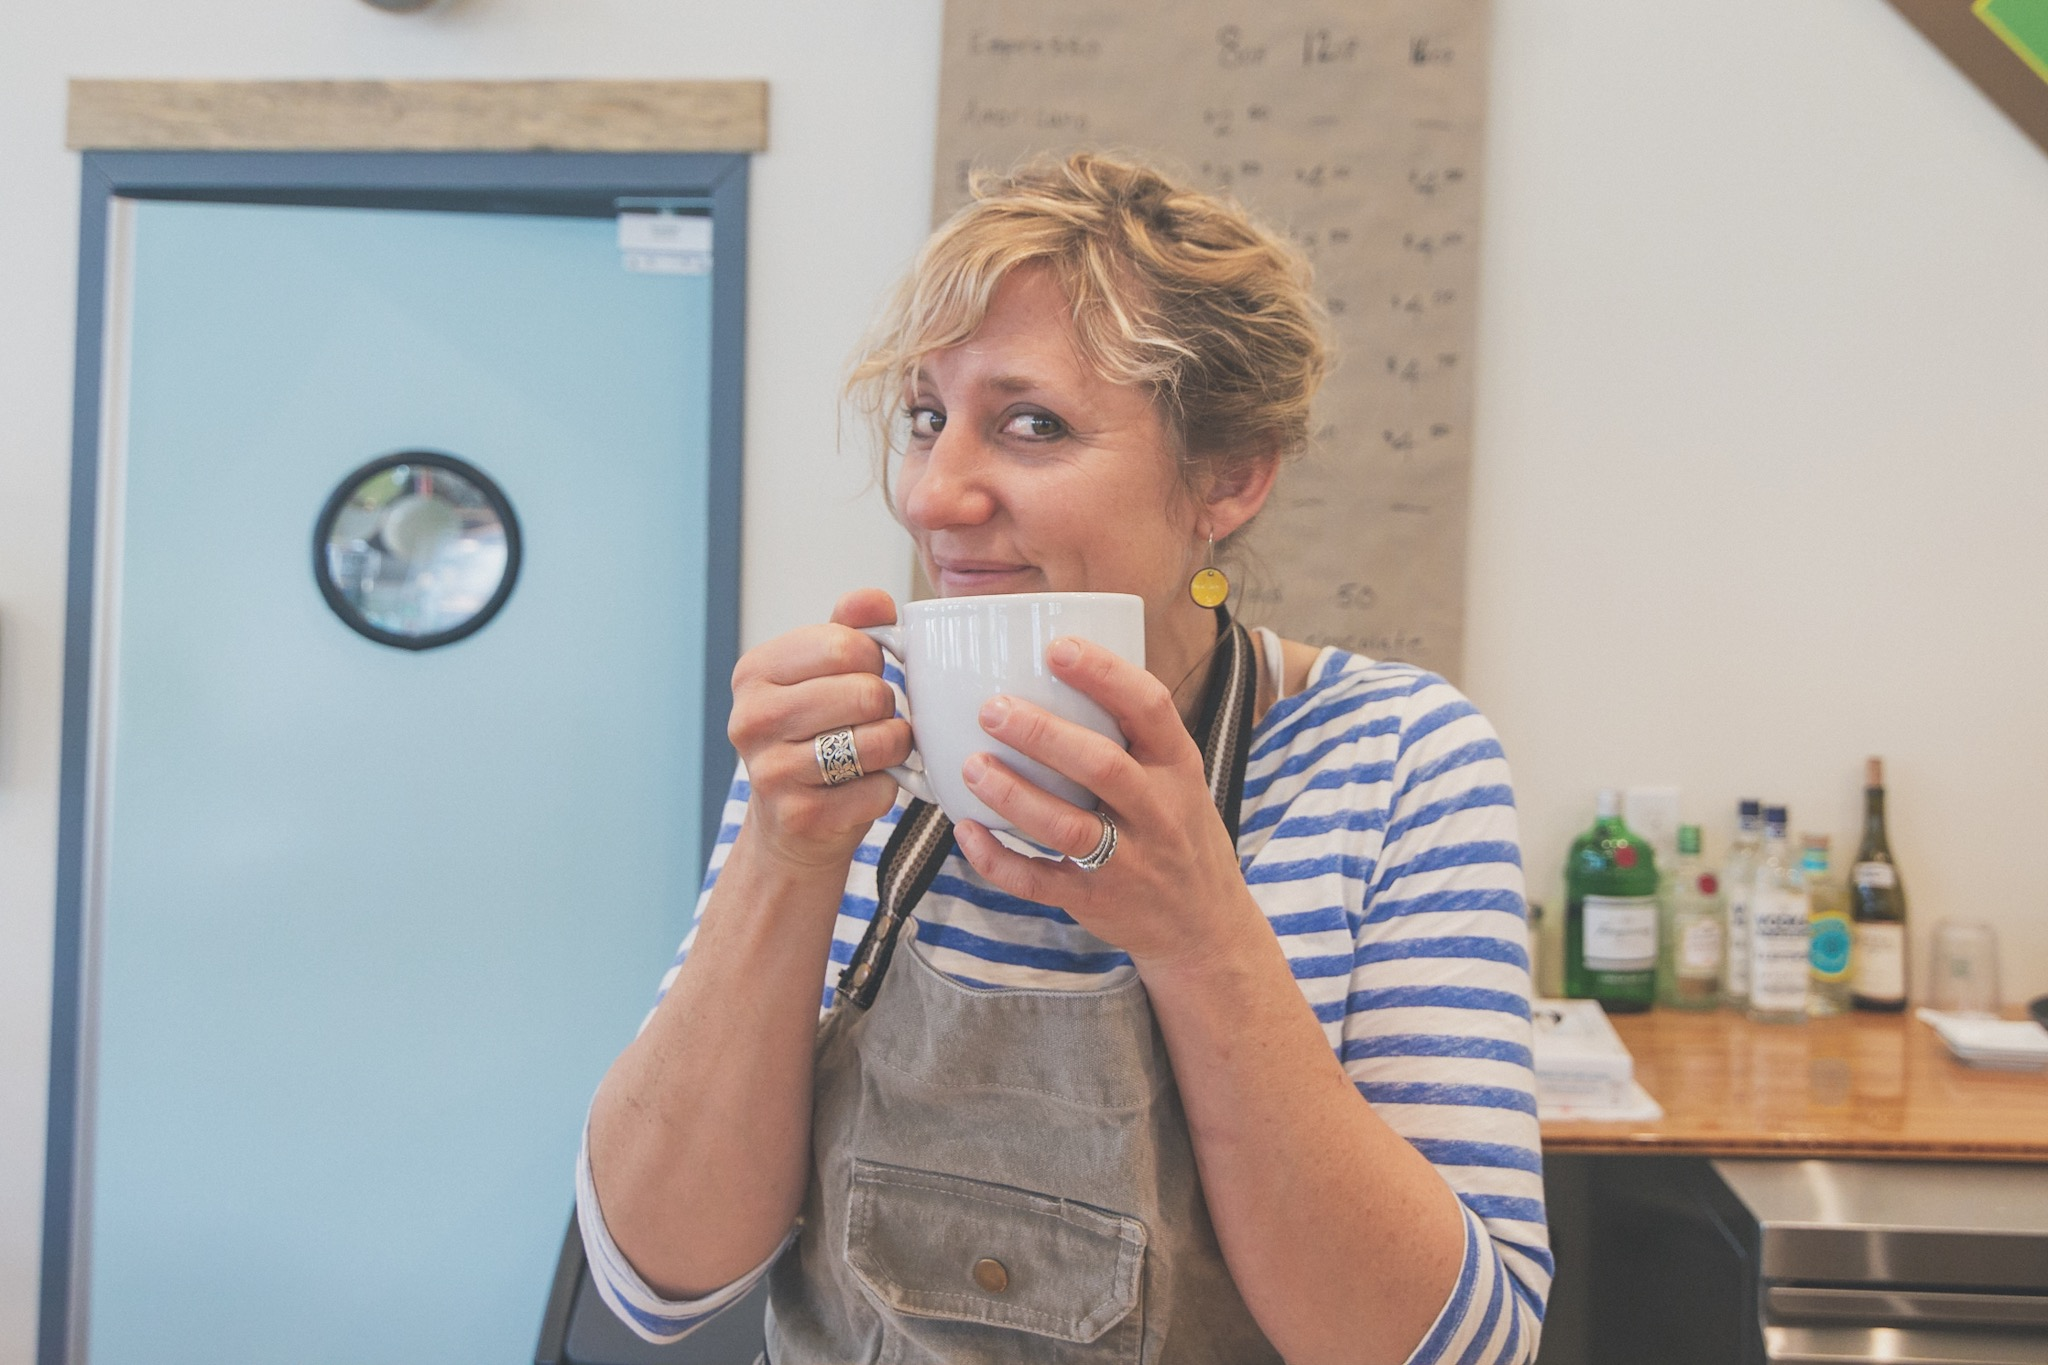 Rachel Nutter, co-owner of The Blythe Cricket, smiles her sparkly smile while holding a mug of Nossa Familia coffee.